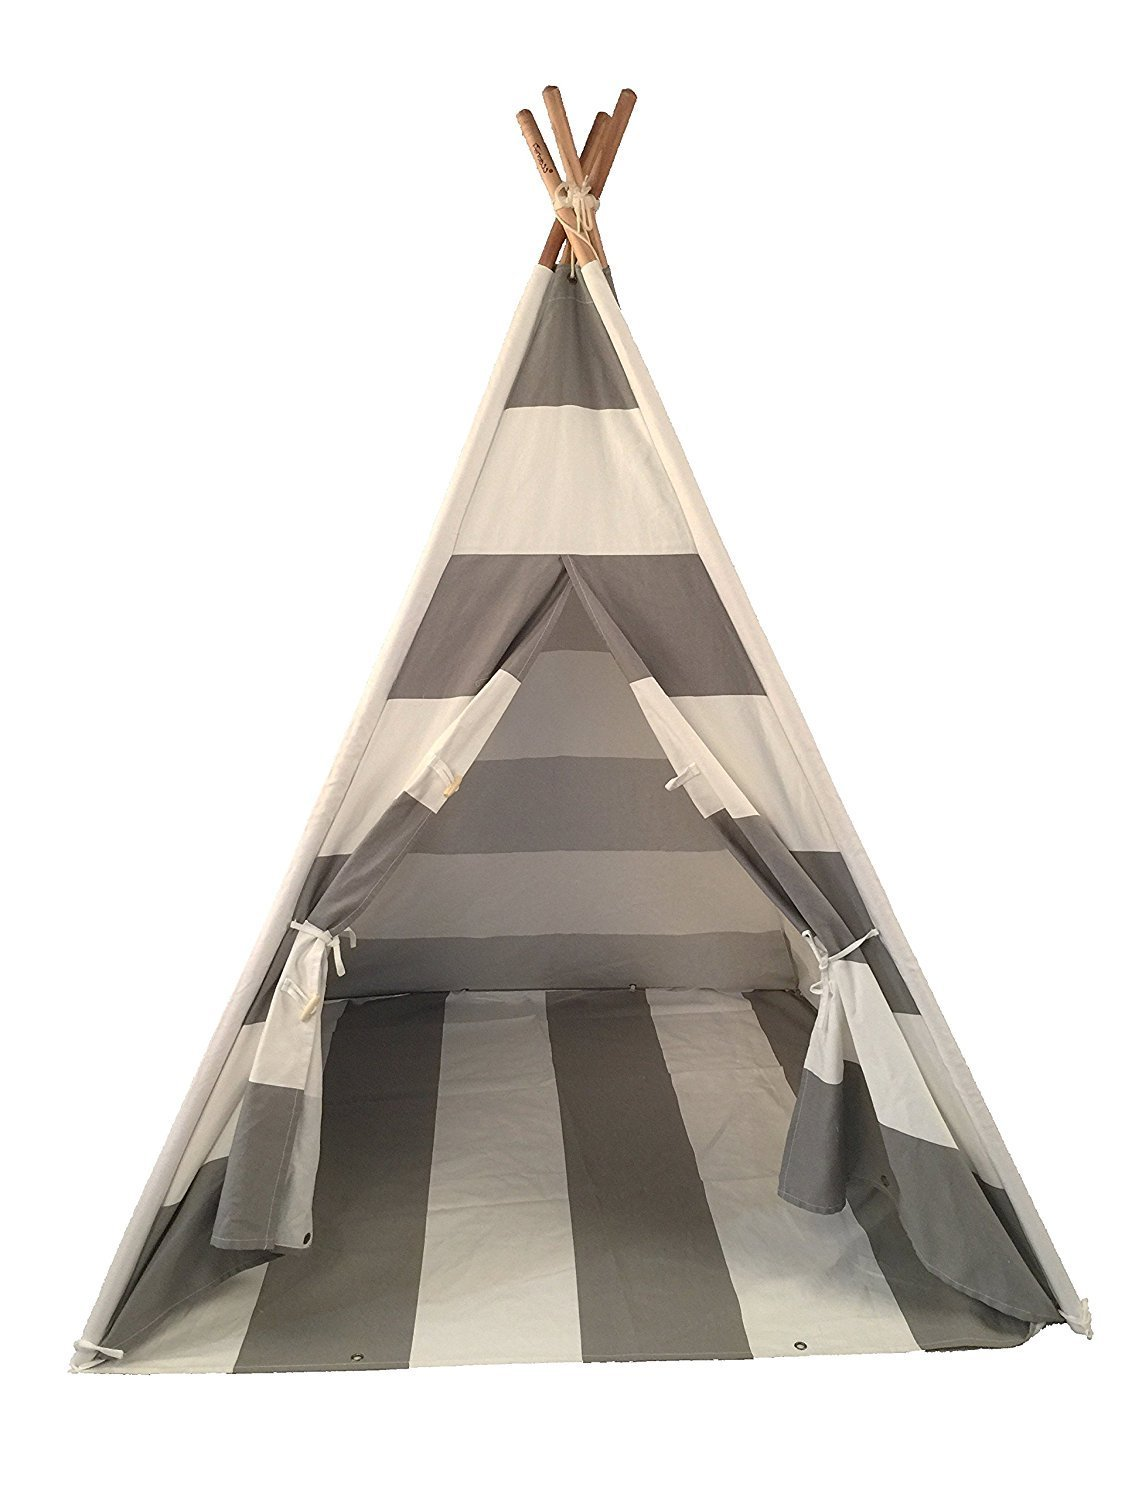 Funkatron Indoor Indian Playhouse Toy Teepee Play Tent for Kids with Carry Case, Blue BlueTeepee